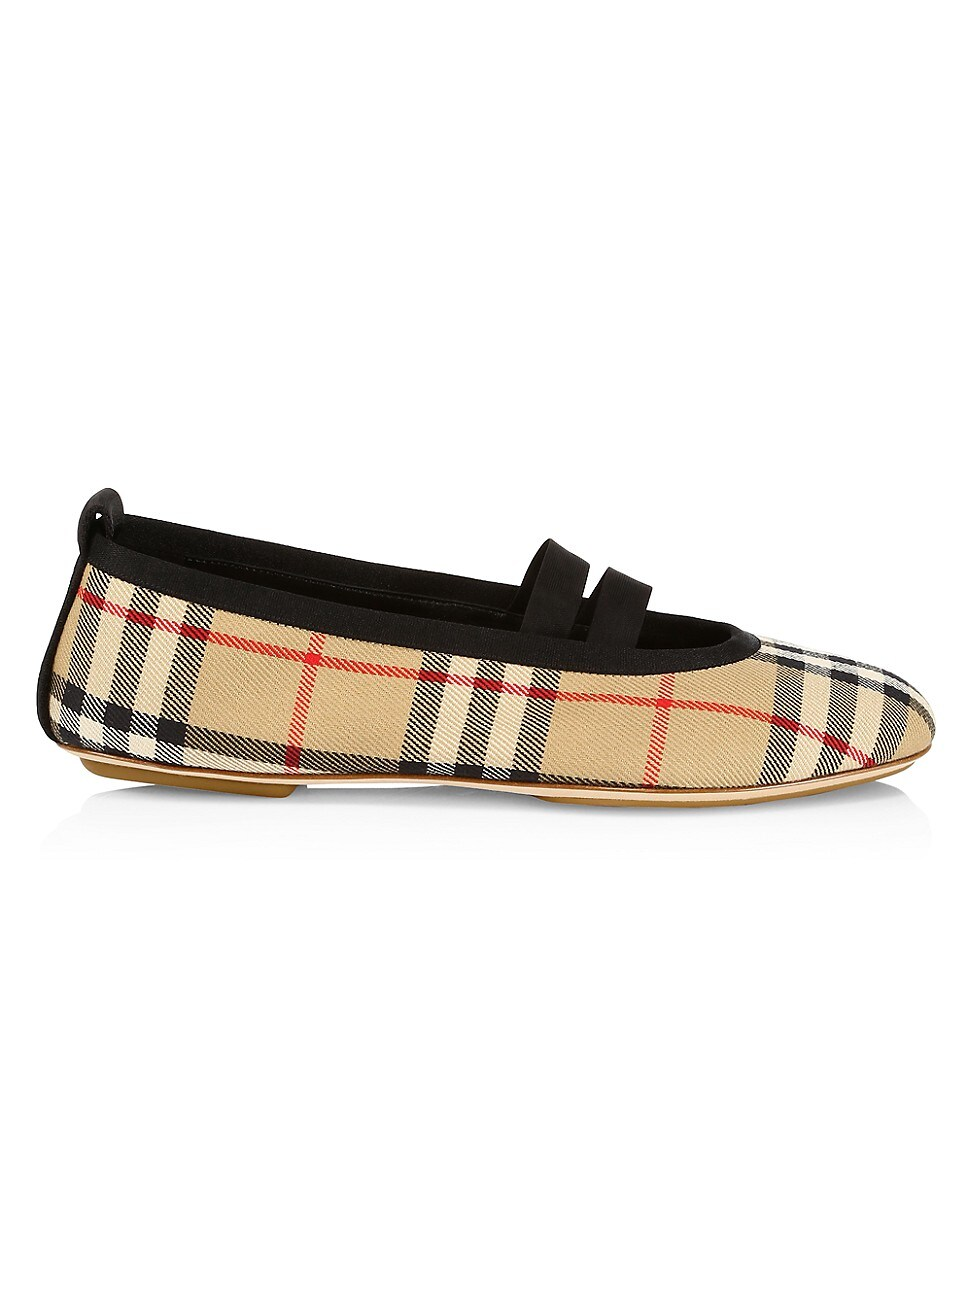 Burberry Leathers WOMEN'S VINTAGE CHECK BALLET FLATS